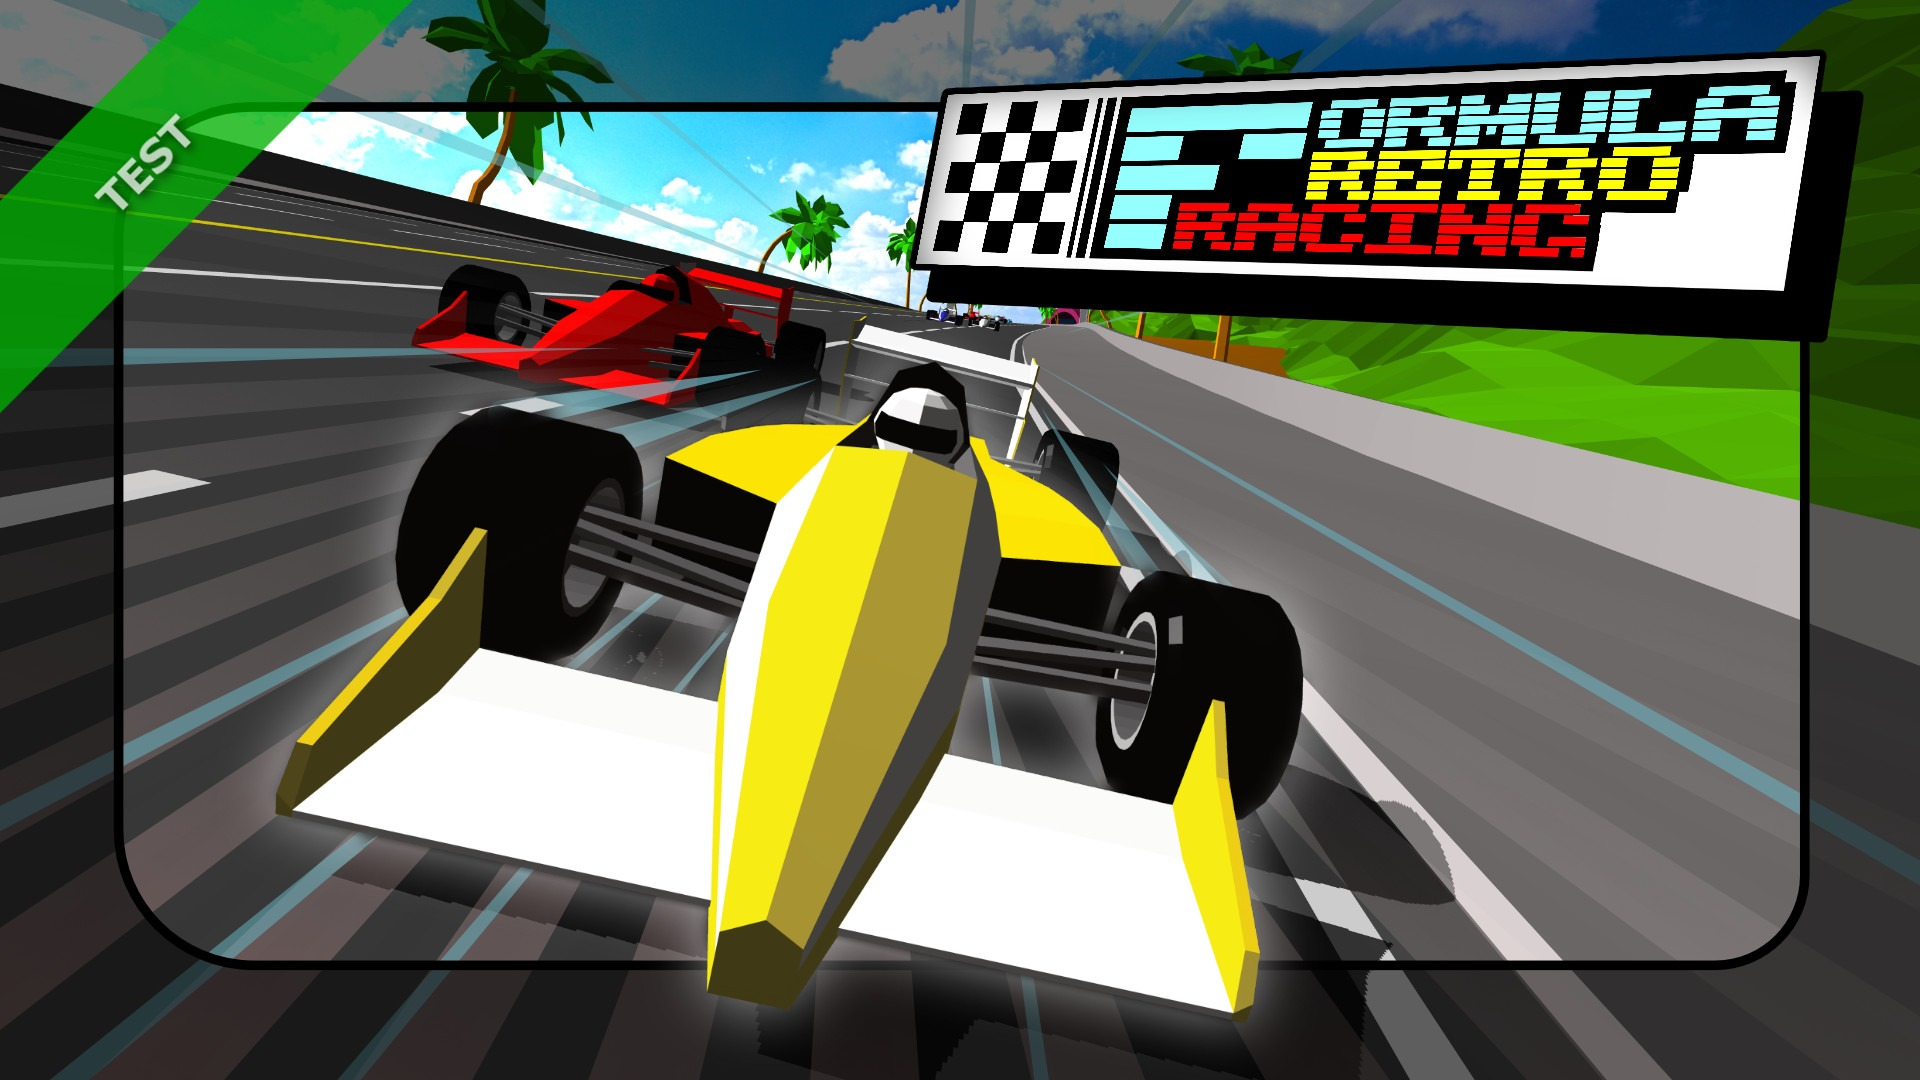 TEST Fomula Retro Racing XWFR